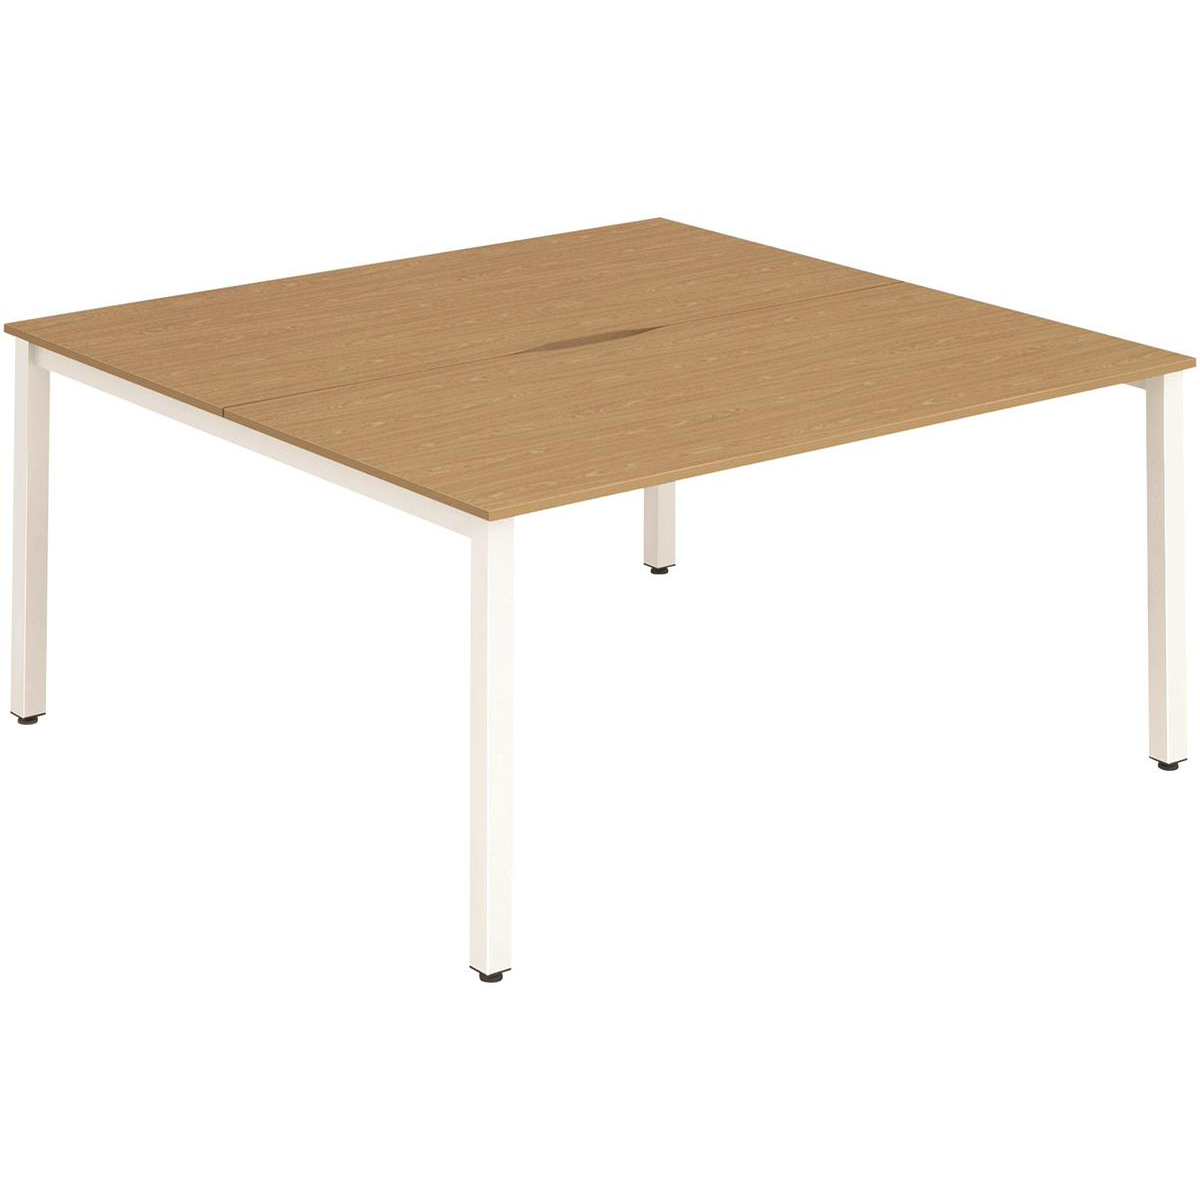 Trexus Bench Desk 2 Person Back to Back Configuration White Leg 1200x1600mm Oak Ref BE158